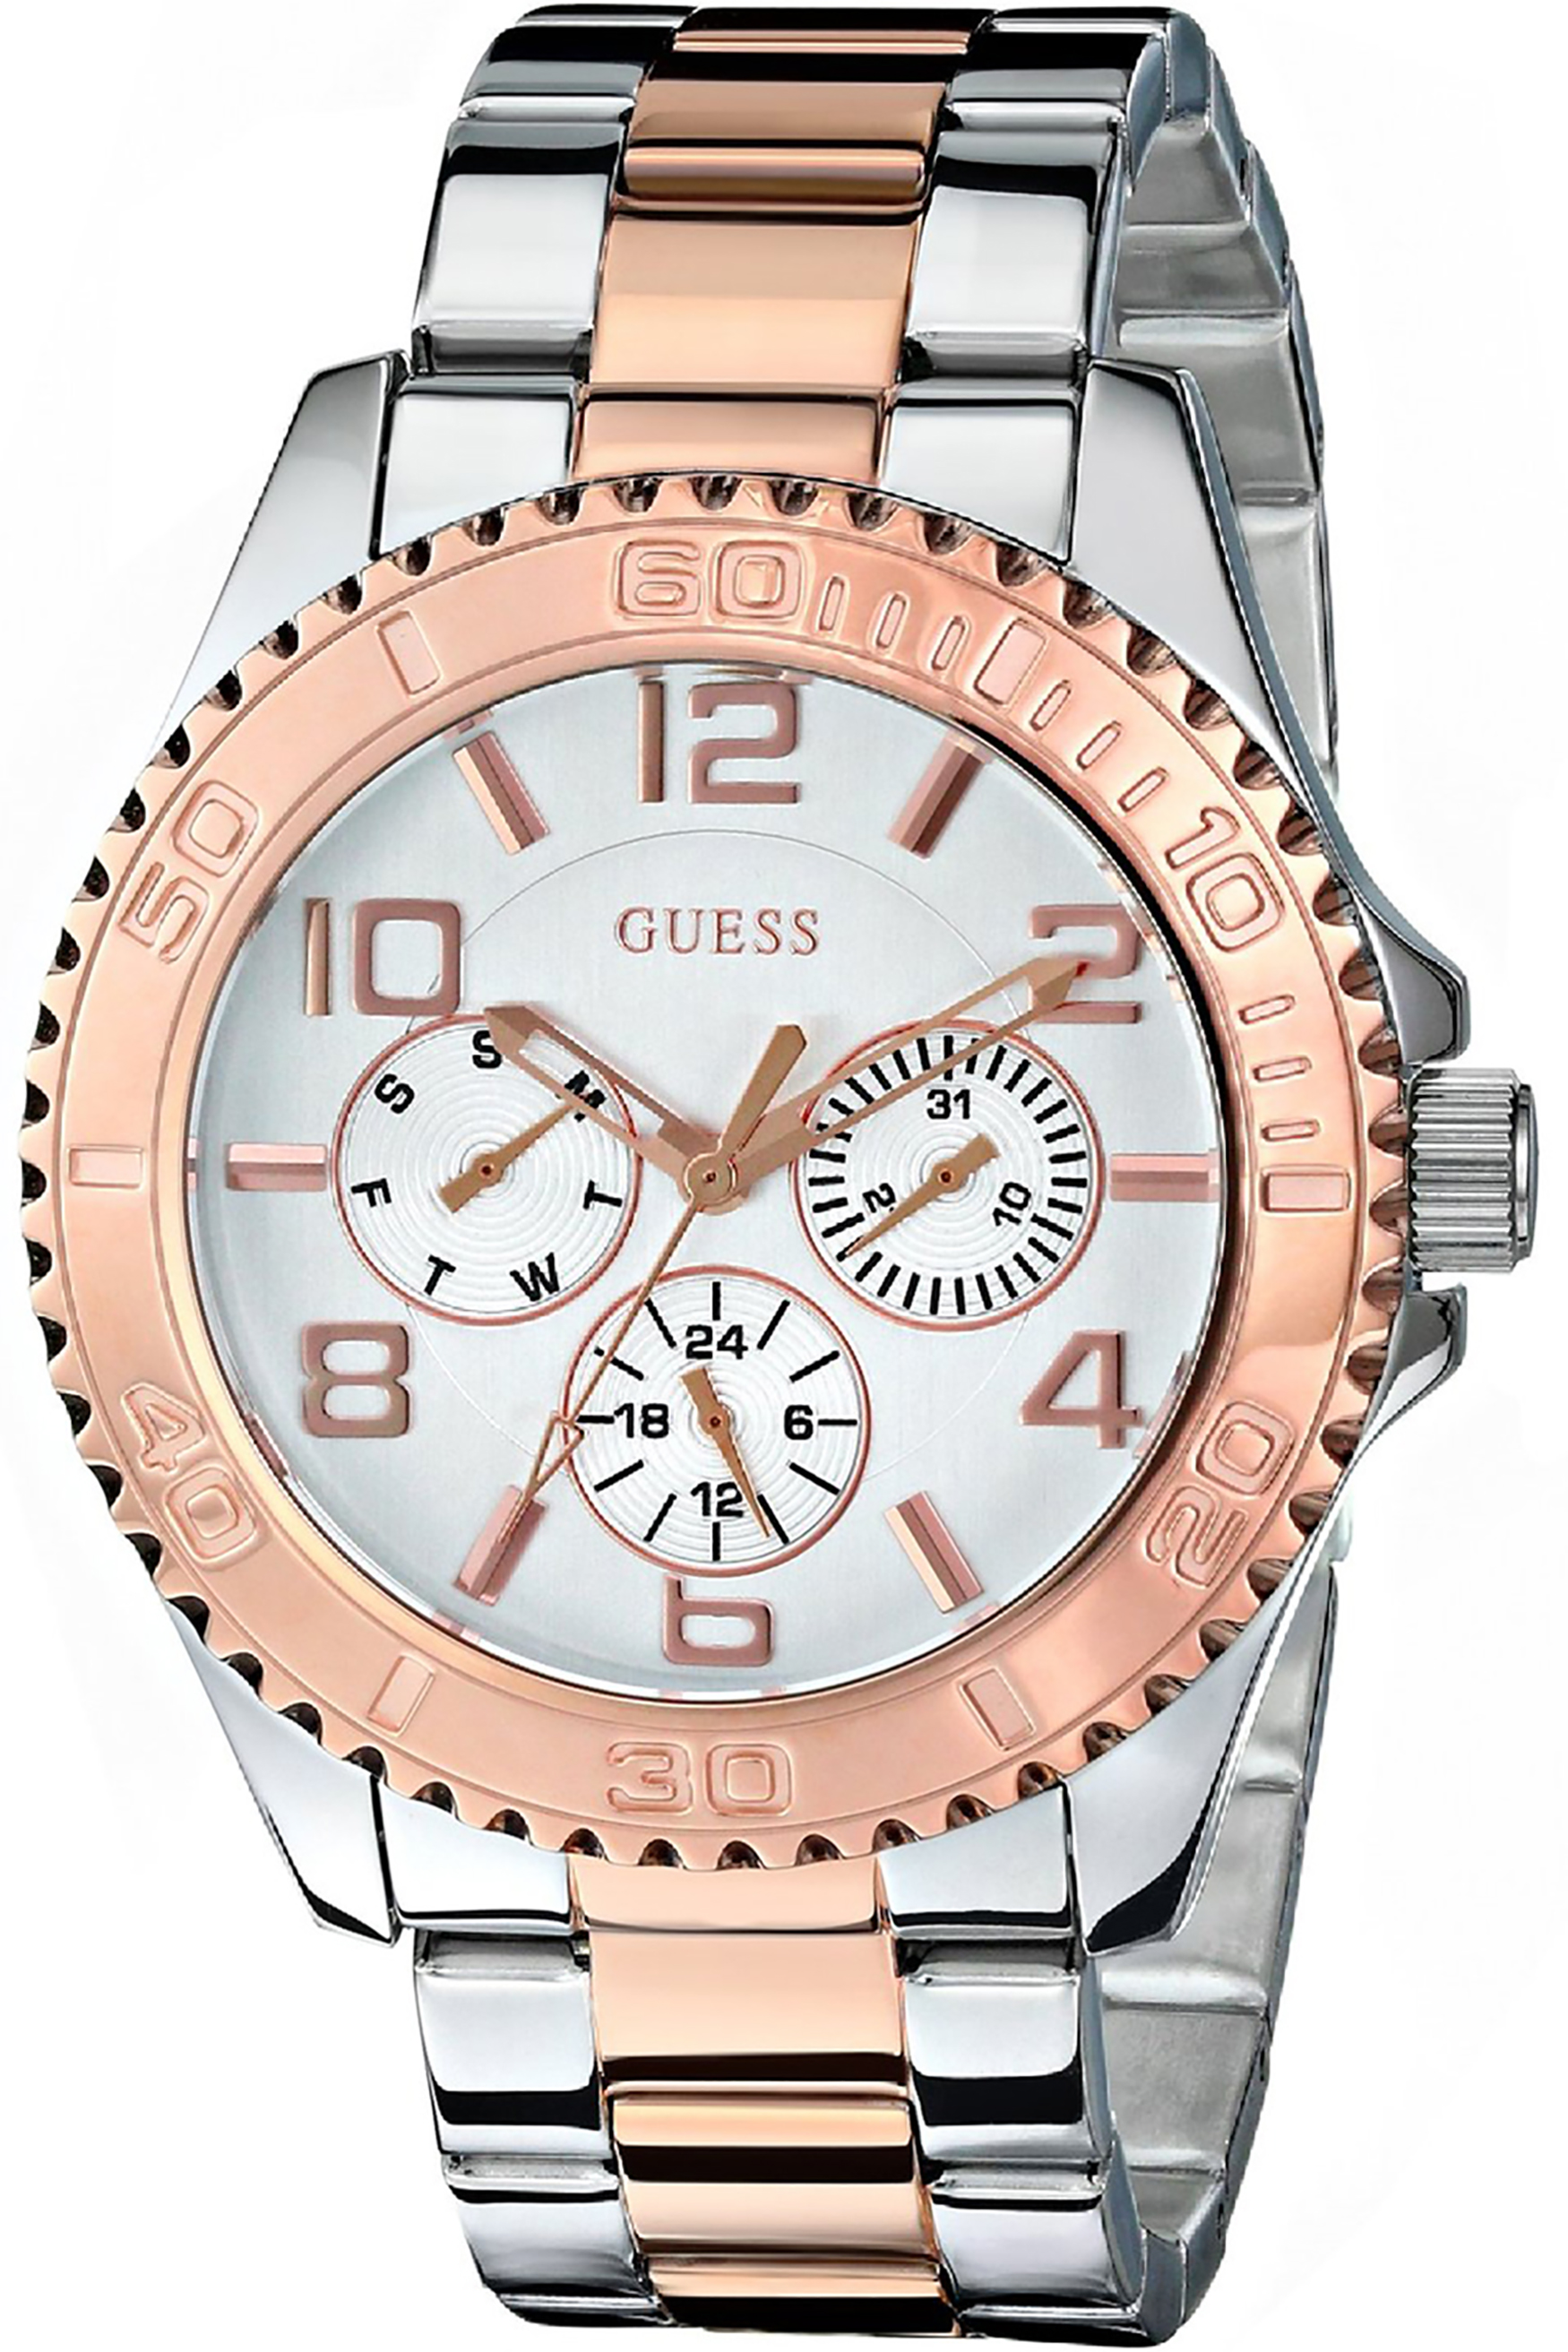 W0231L5,Ladies's Sporty,Stainless Steel & Rose Gold-Tone,Multi-Function,50m WR